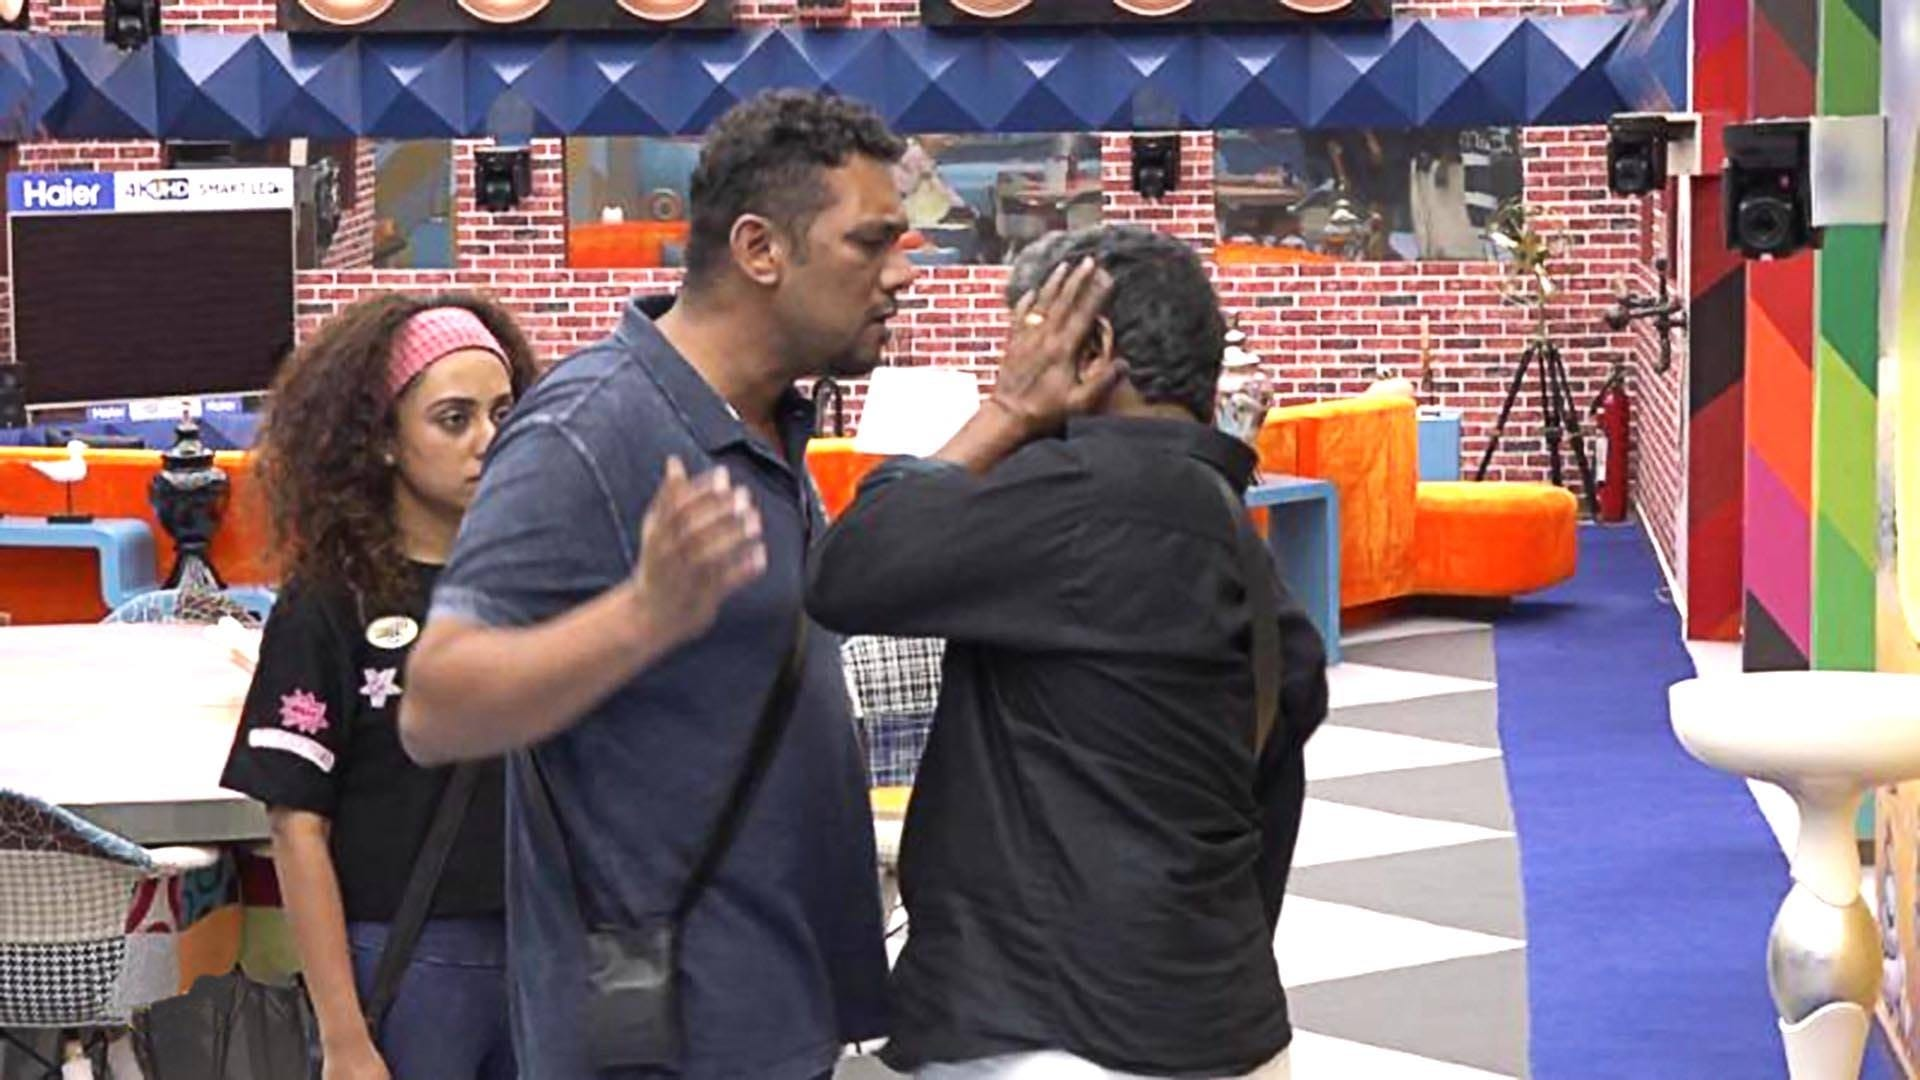 Bigg Boss - Season 1 Episode 27 : Day 26: Is Bigg Boss Unfair?